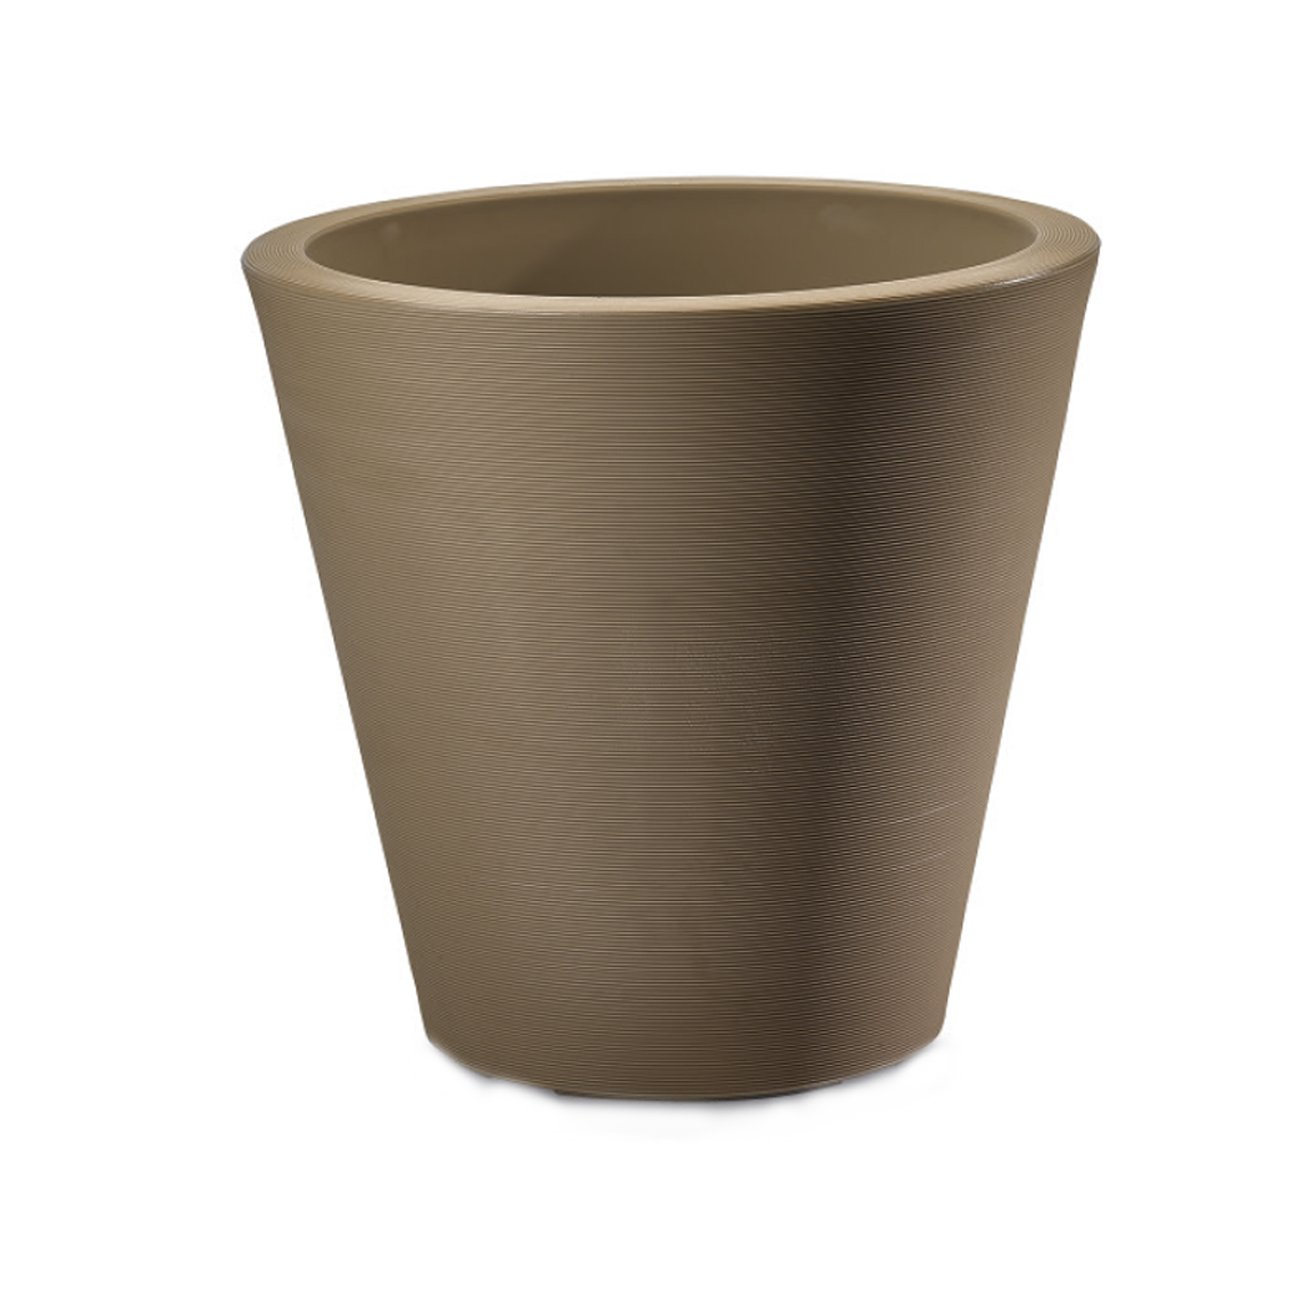 Crescent Garden Rotational Molded Madison Planter, 20'', Silt